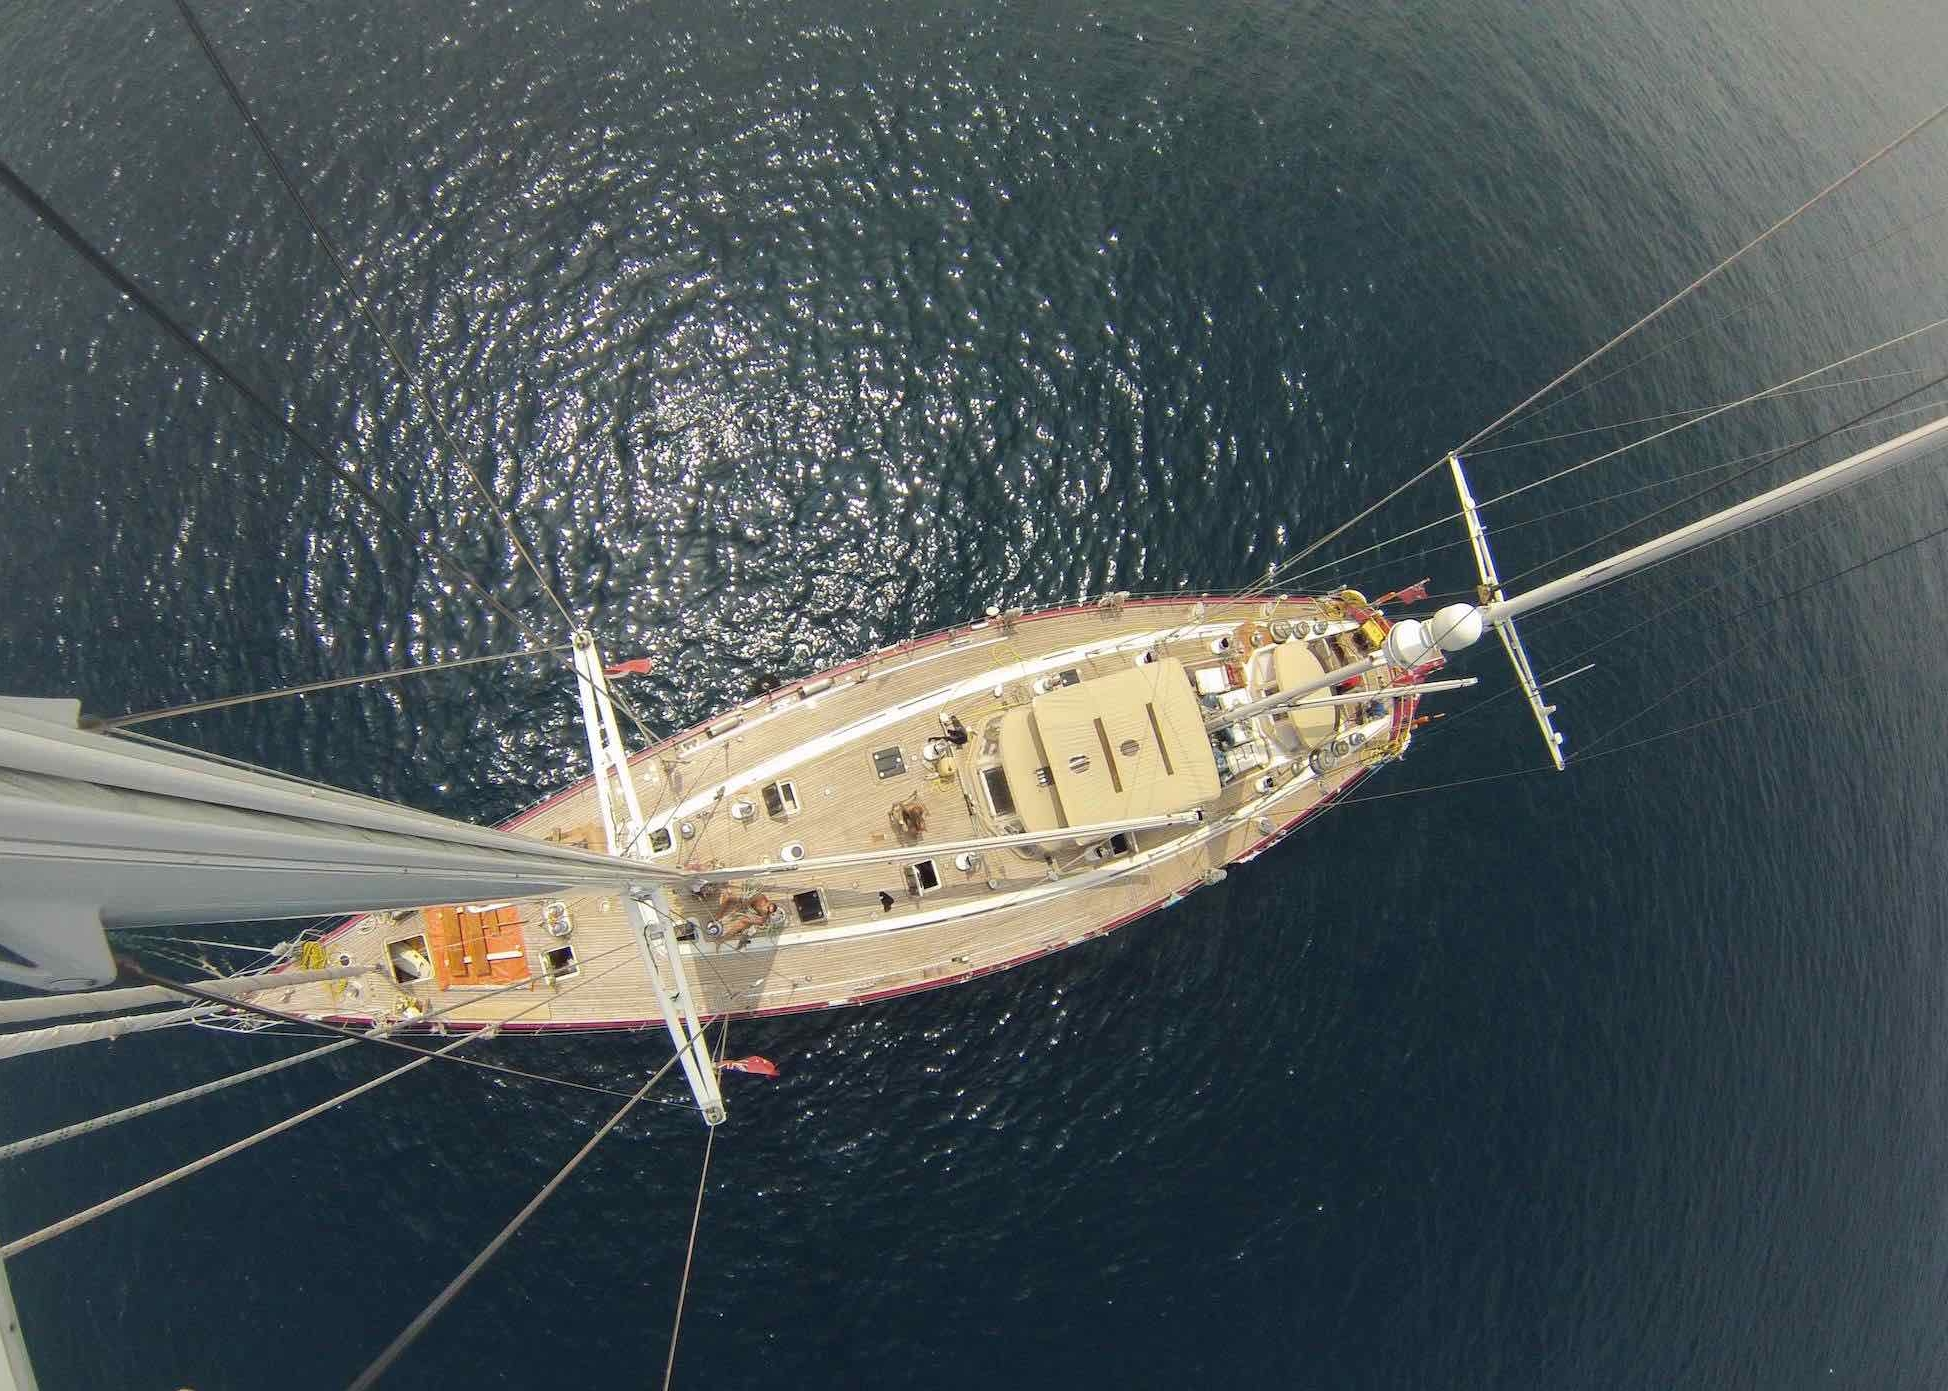 Aphrodite_aerial shot from mast top yacht holiday_XS.jpeg